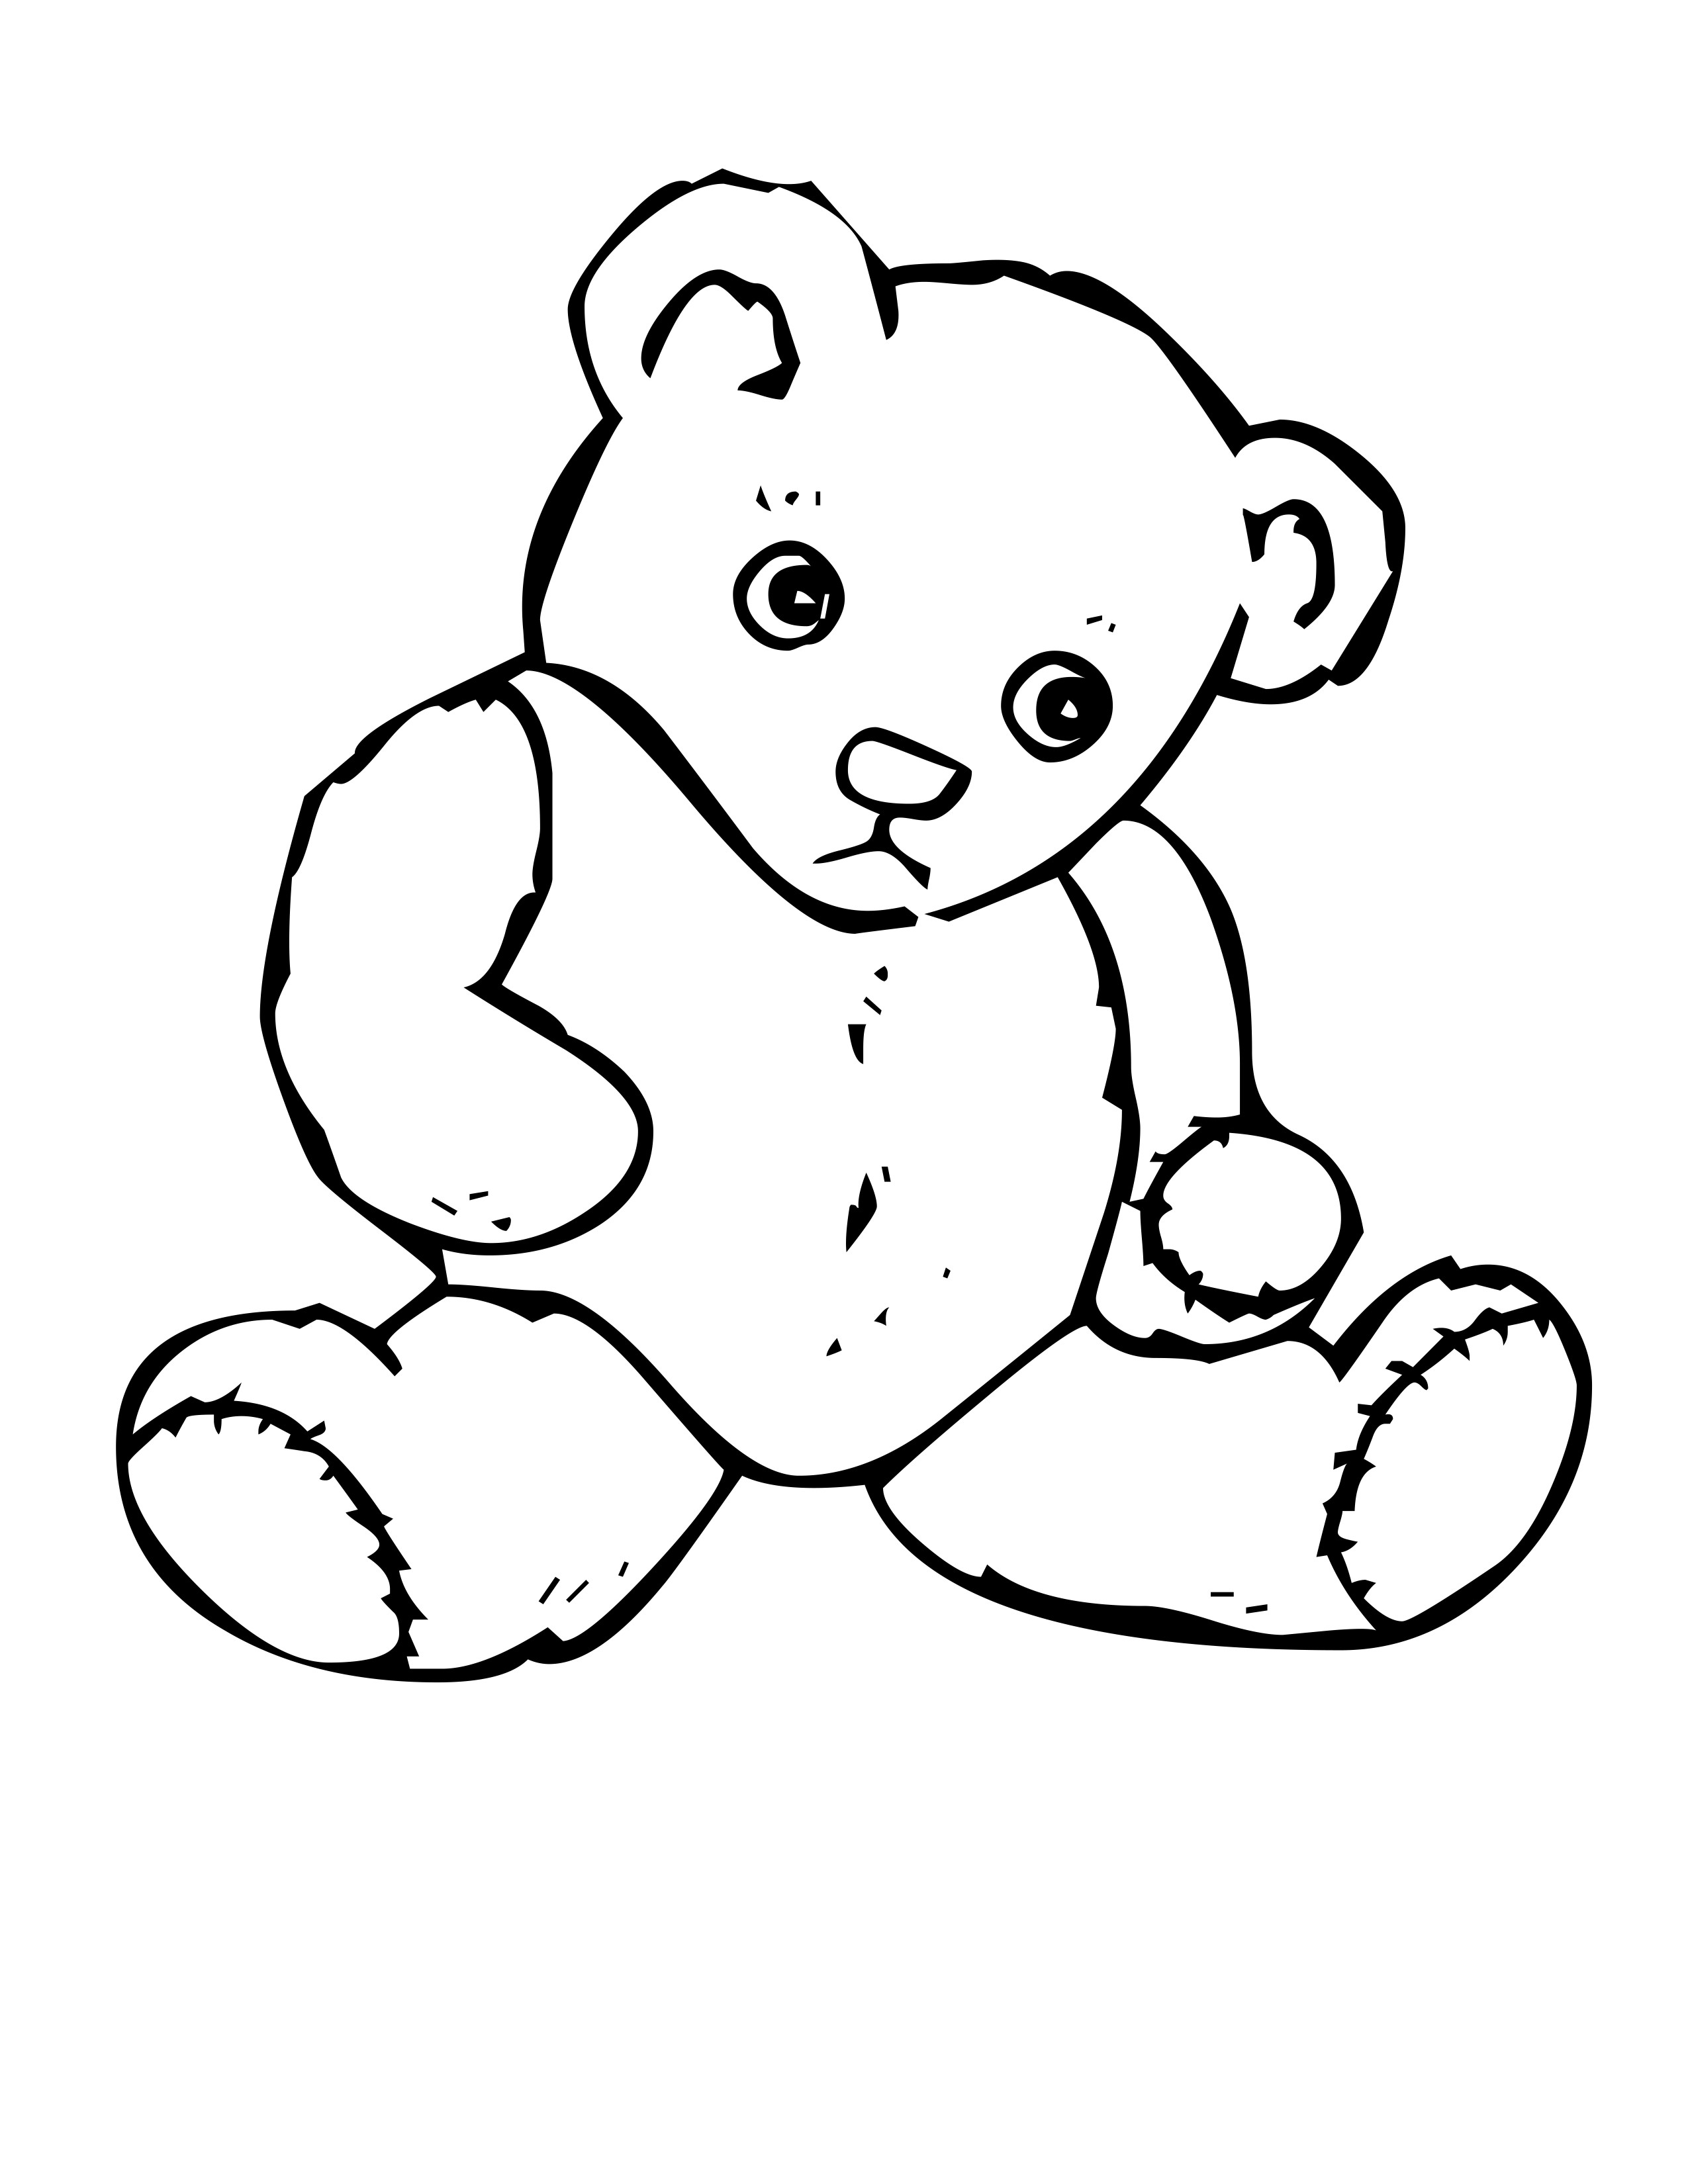 2550x3300 Teddy Bear Coloring Pages Free Printable At Teddy Bear Coloring